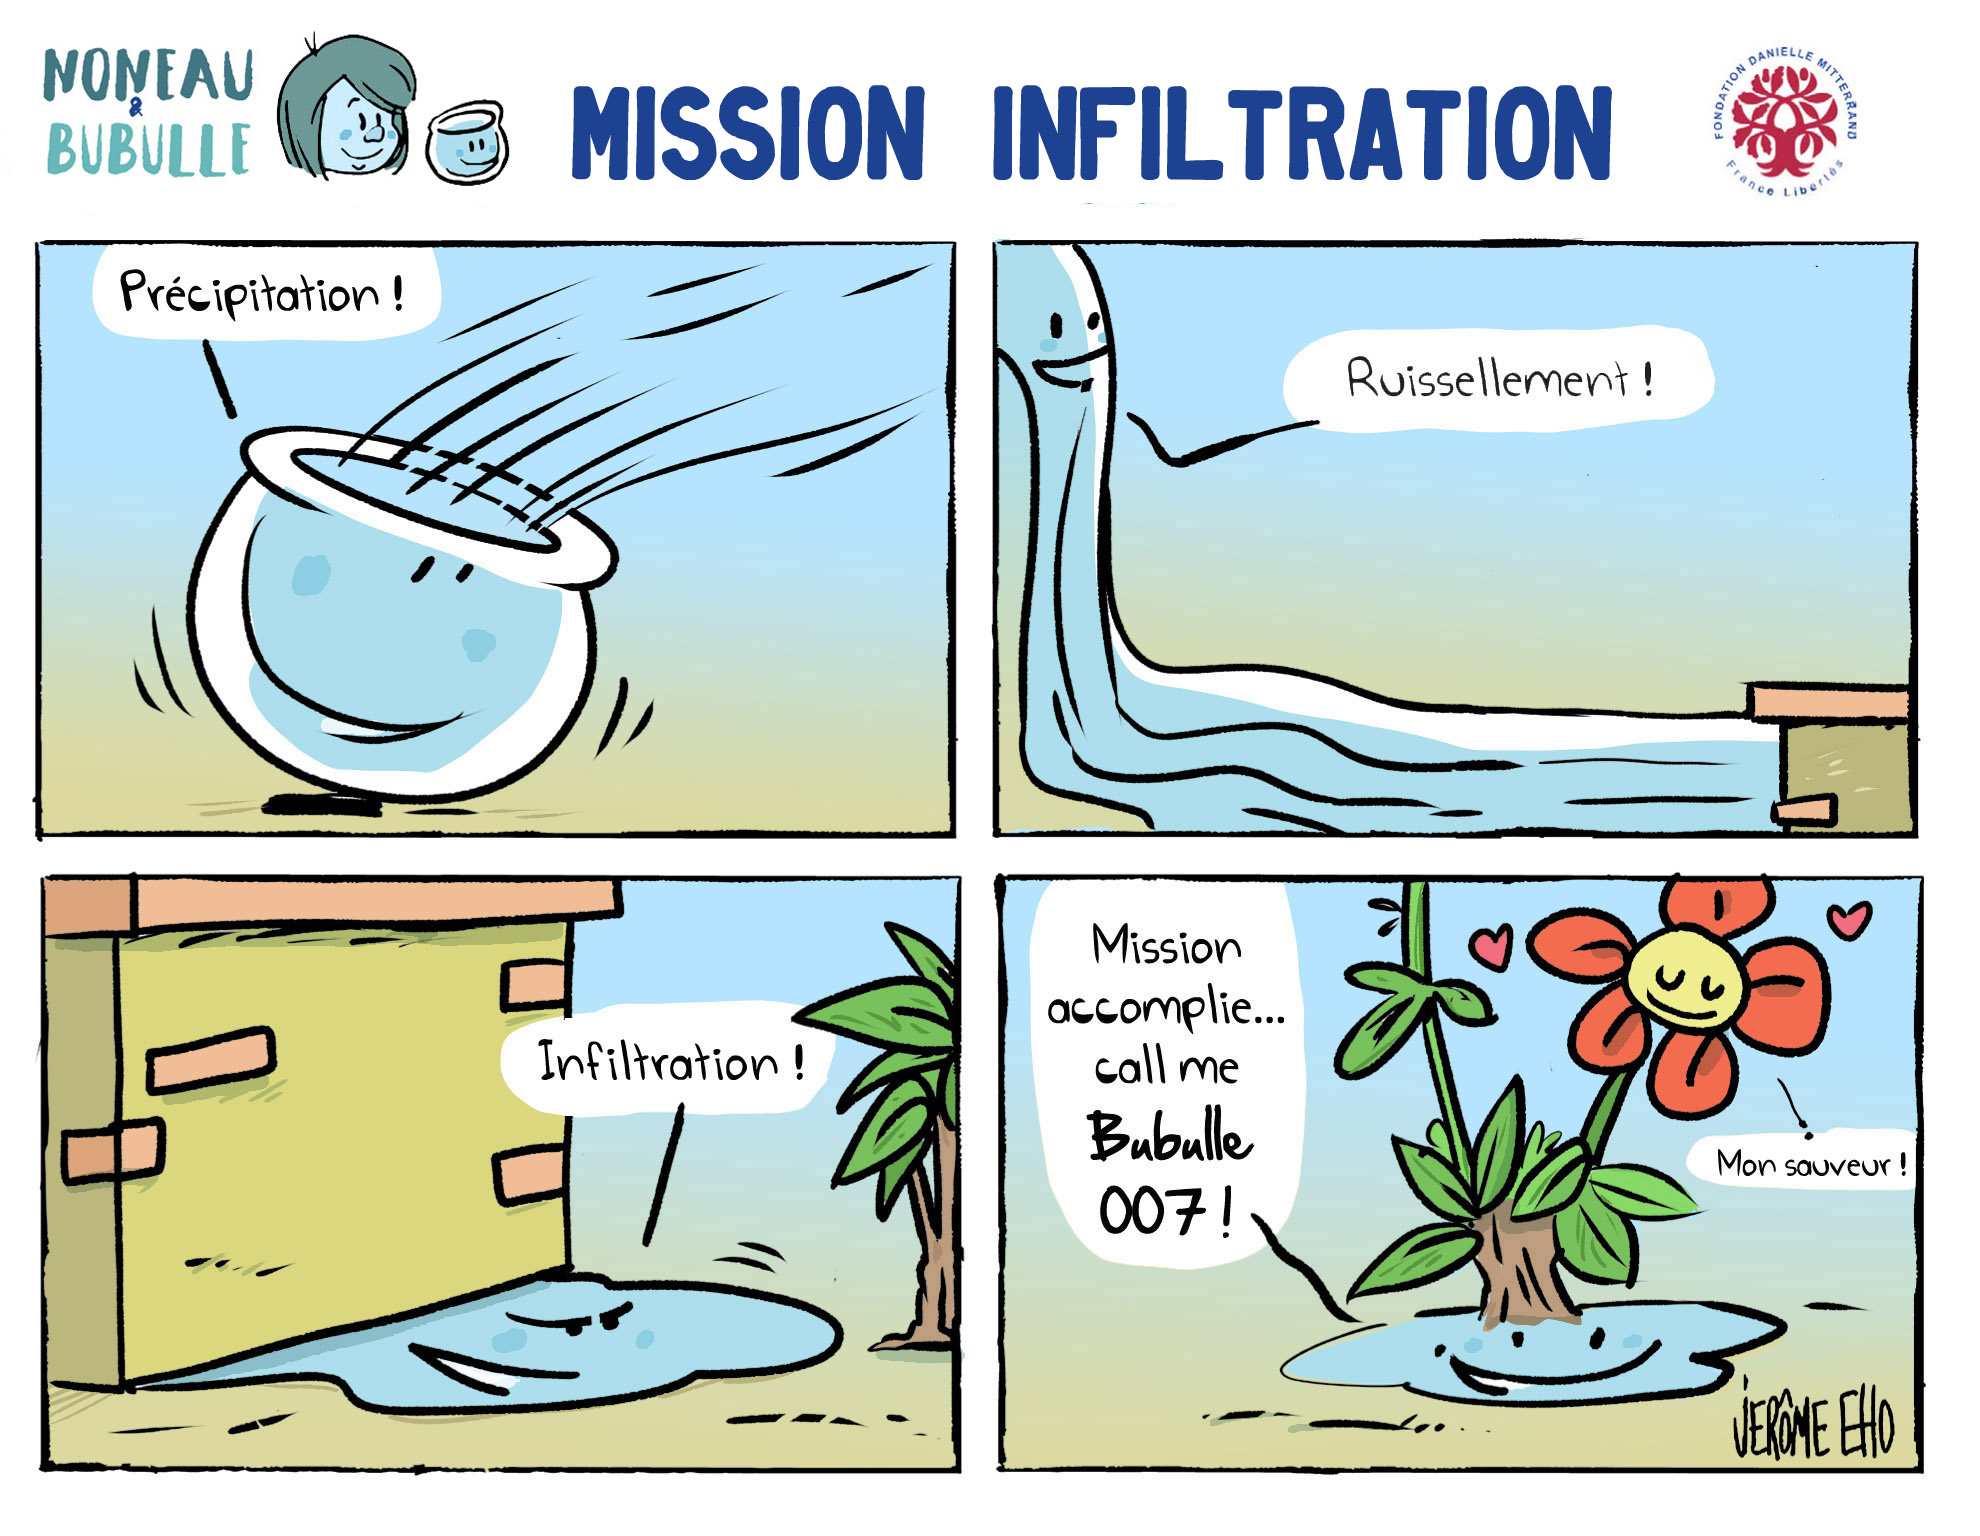 Mission infiltration - Jérôme Eho